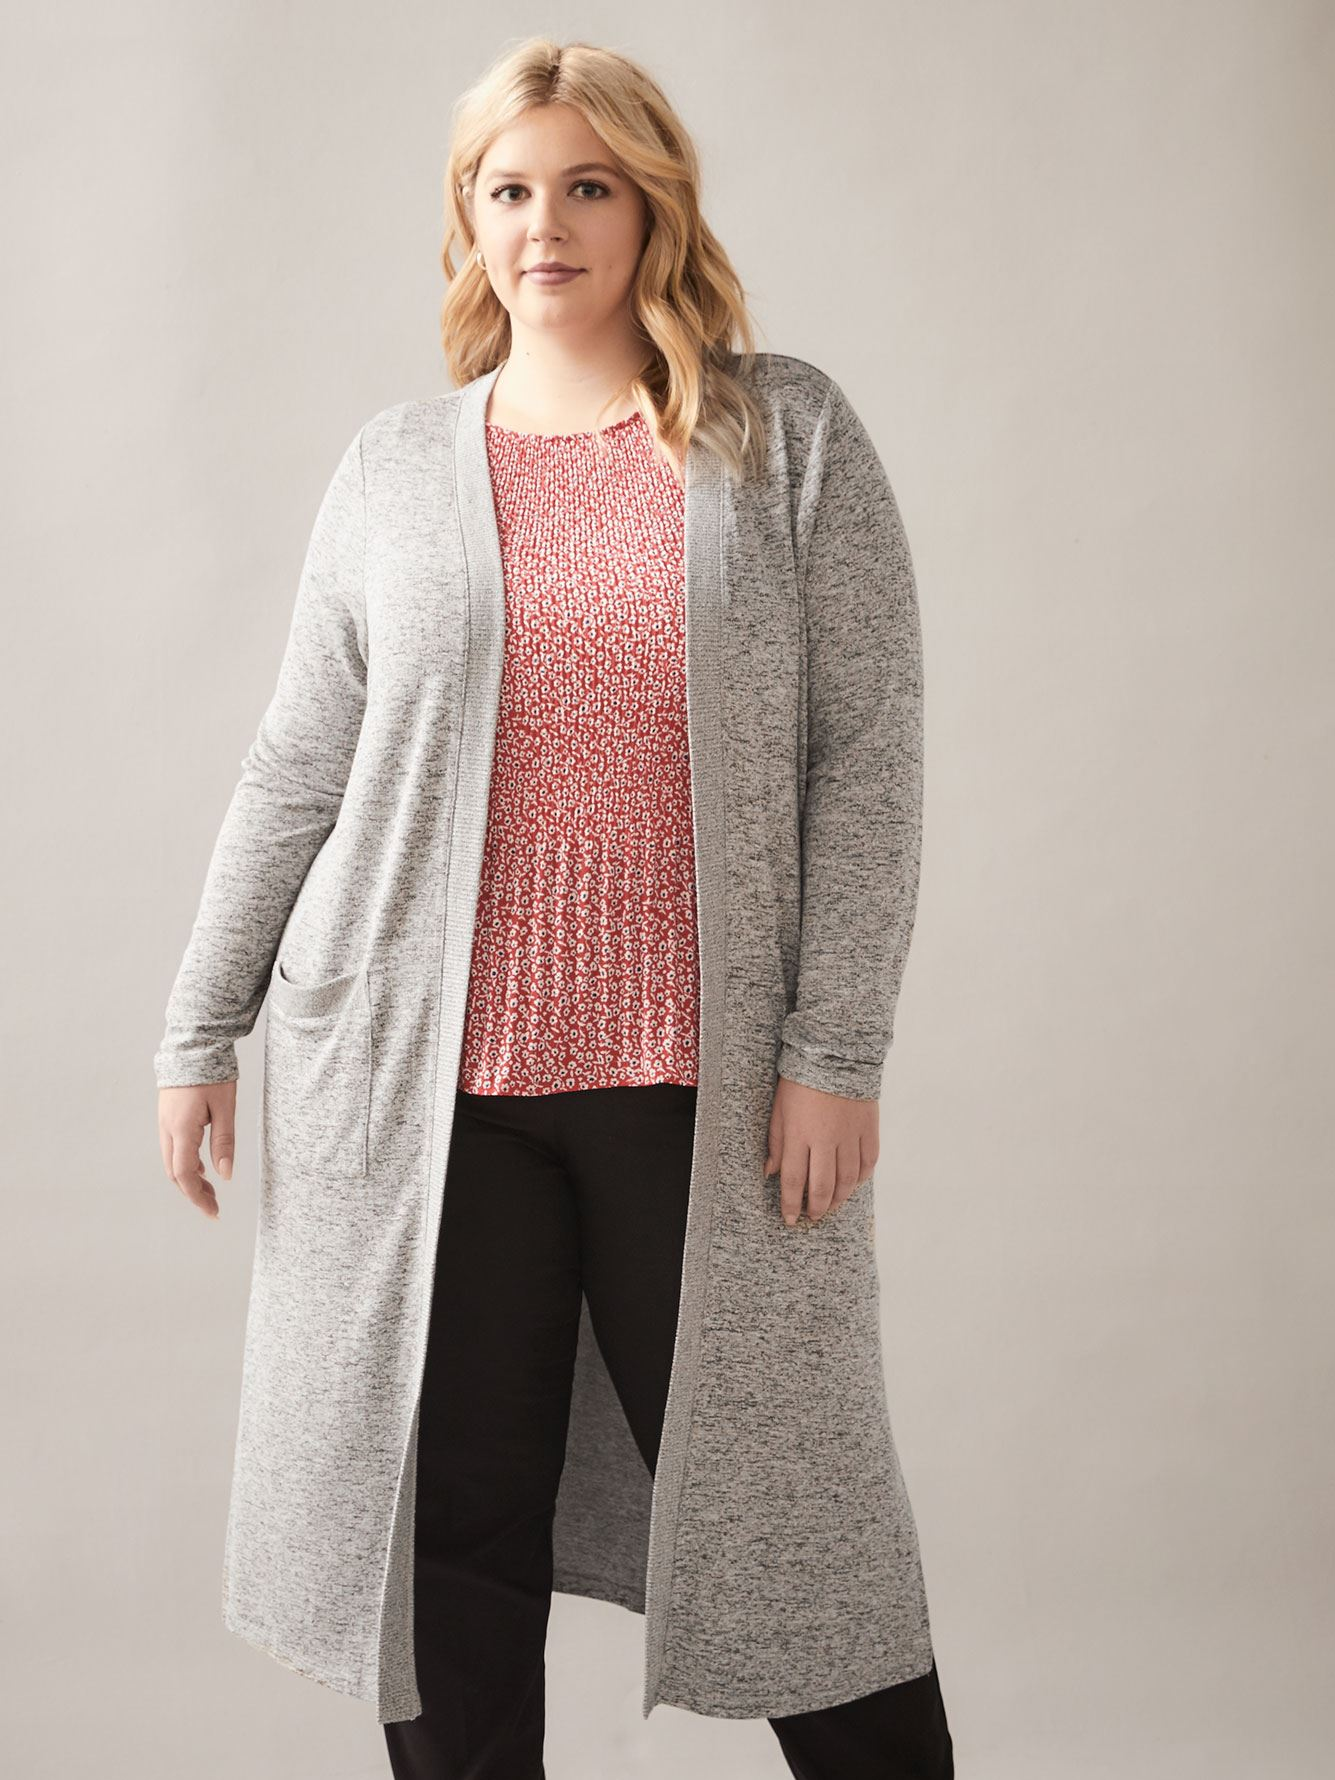 Long Open-Front Cardigan - In Every Story